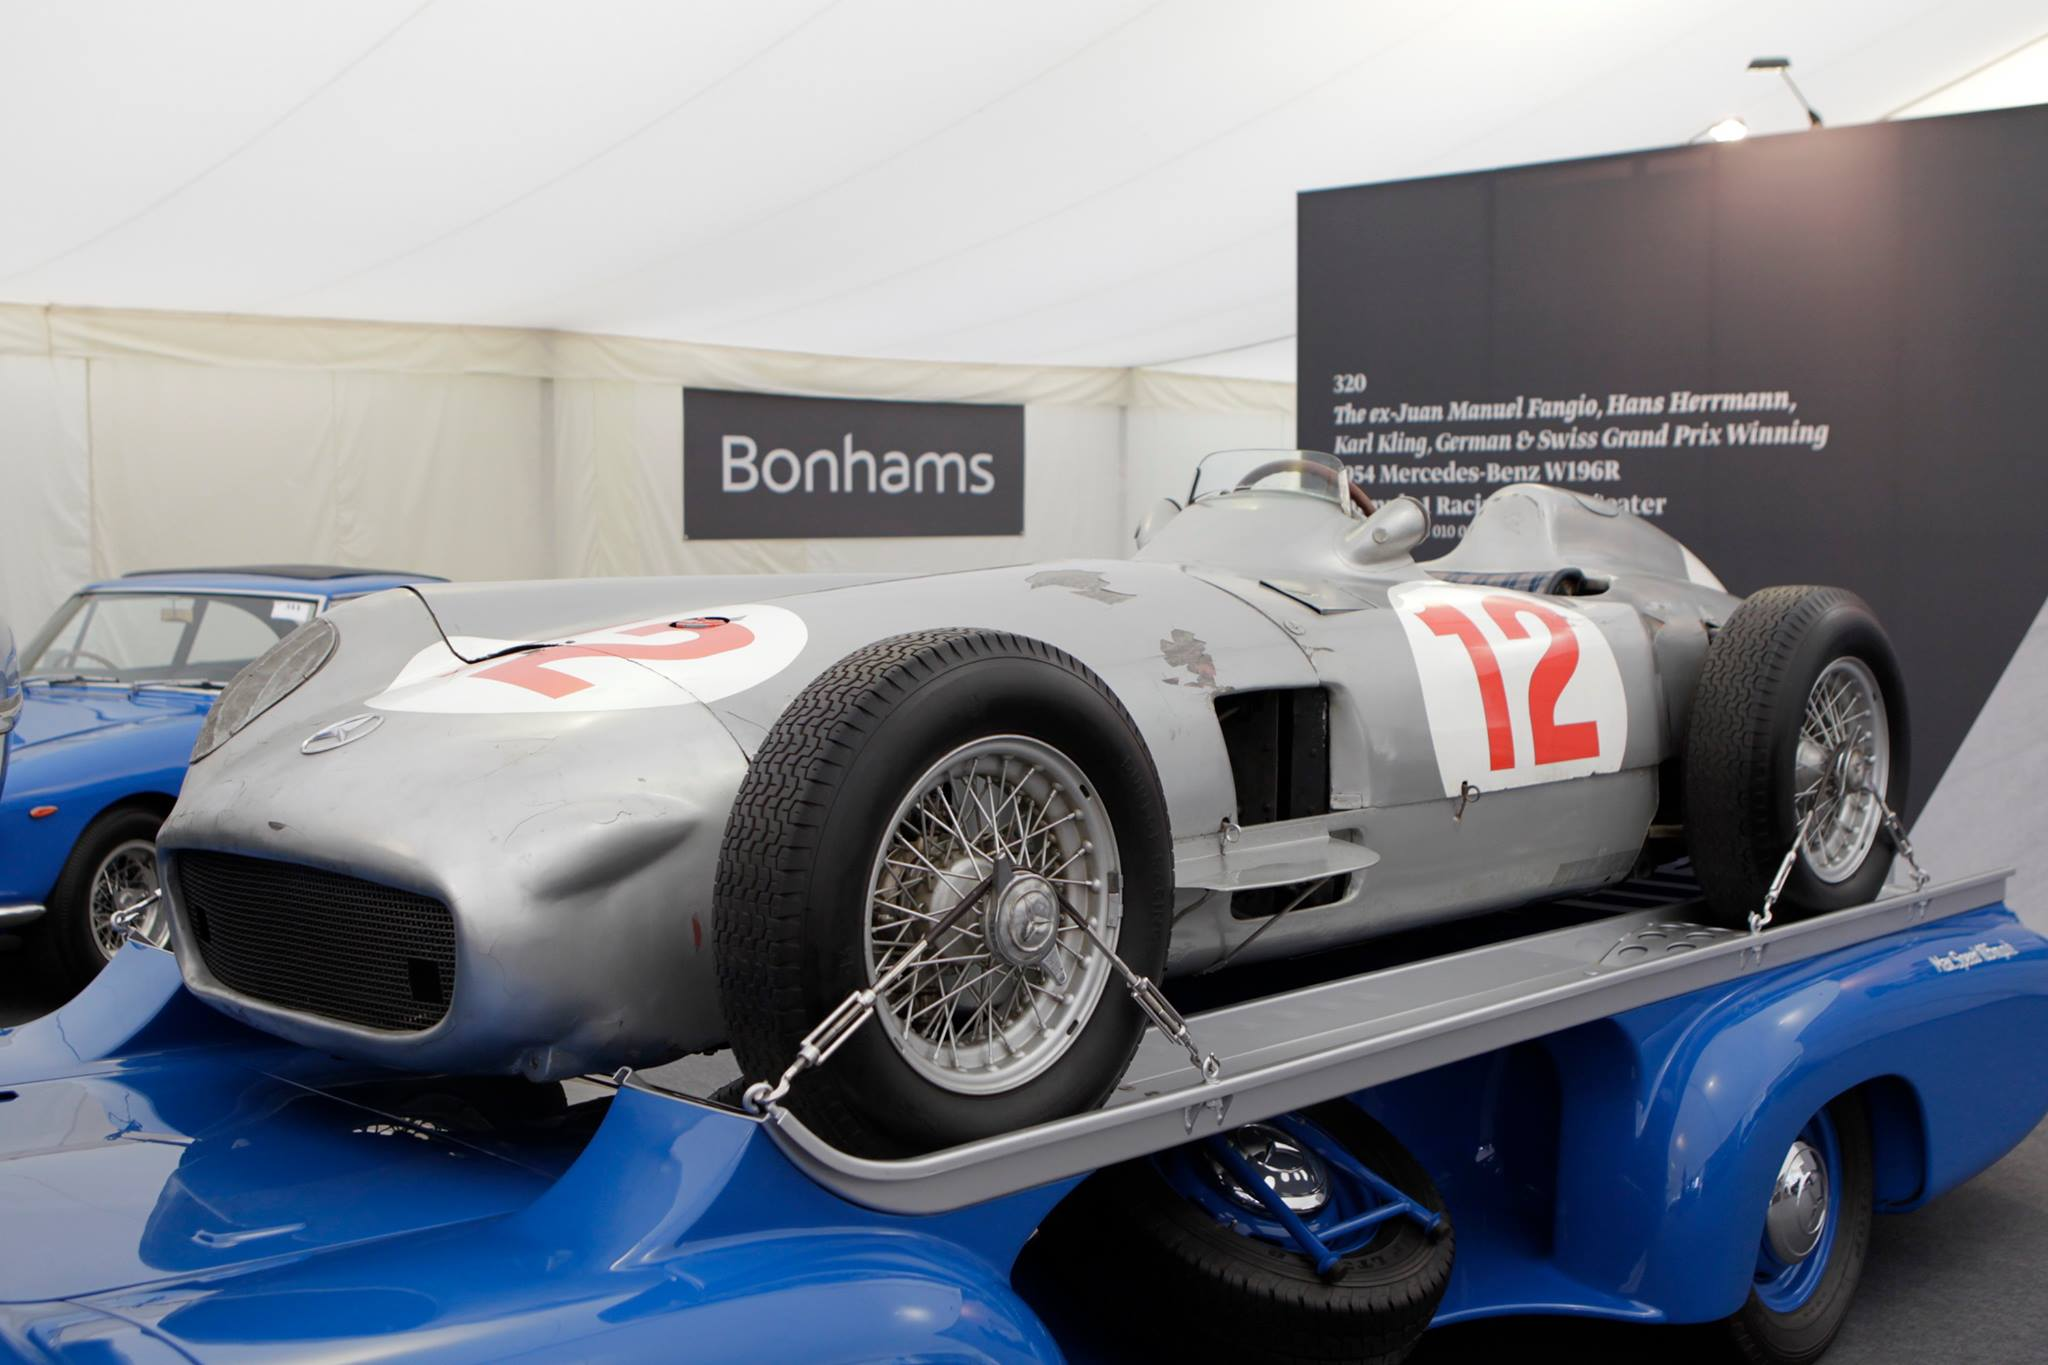 Fangio S Mercedes Benz 1954 F1 Car Sold For 29 7 Million